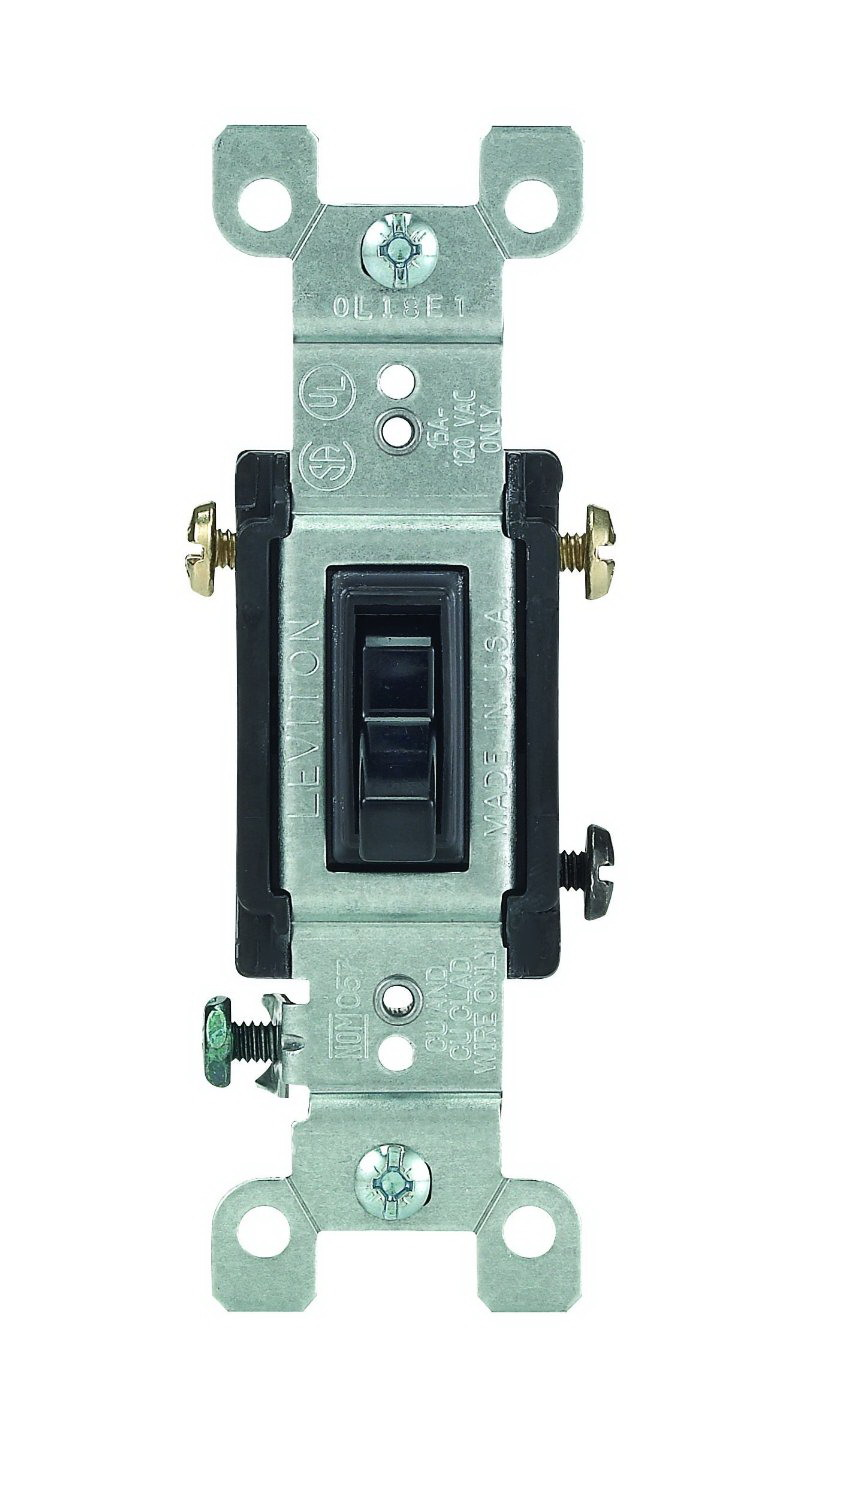 Leviton 232-01453-02E Framed Grounded Toggle Switch, 120 VAC, 15 A, Black